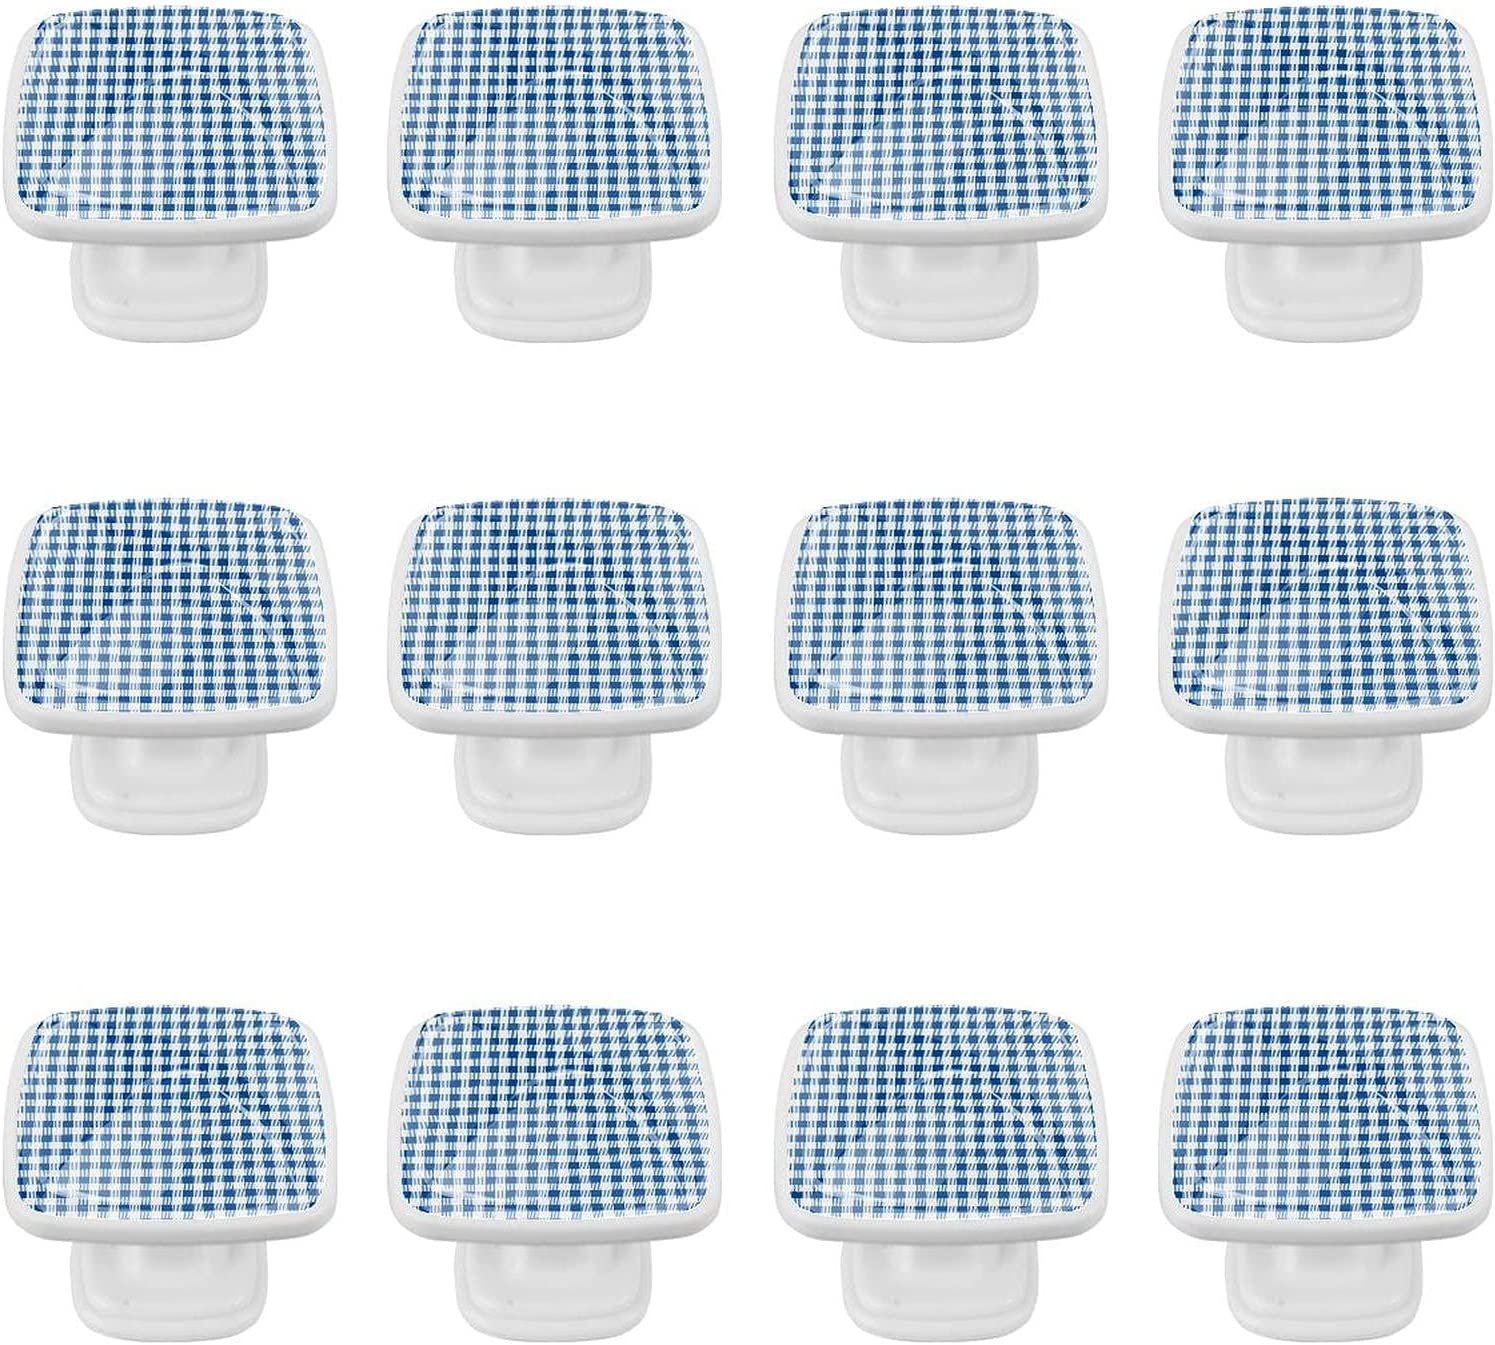 Kitchen Cabinet Knobs - Textured Blue Regular dealer OFFicial mail order and Inc Plaid 1.18 White